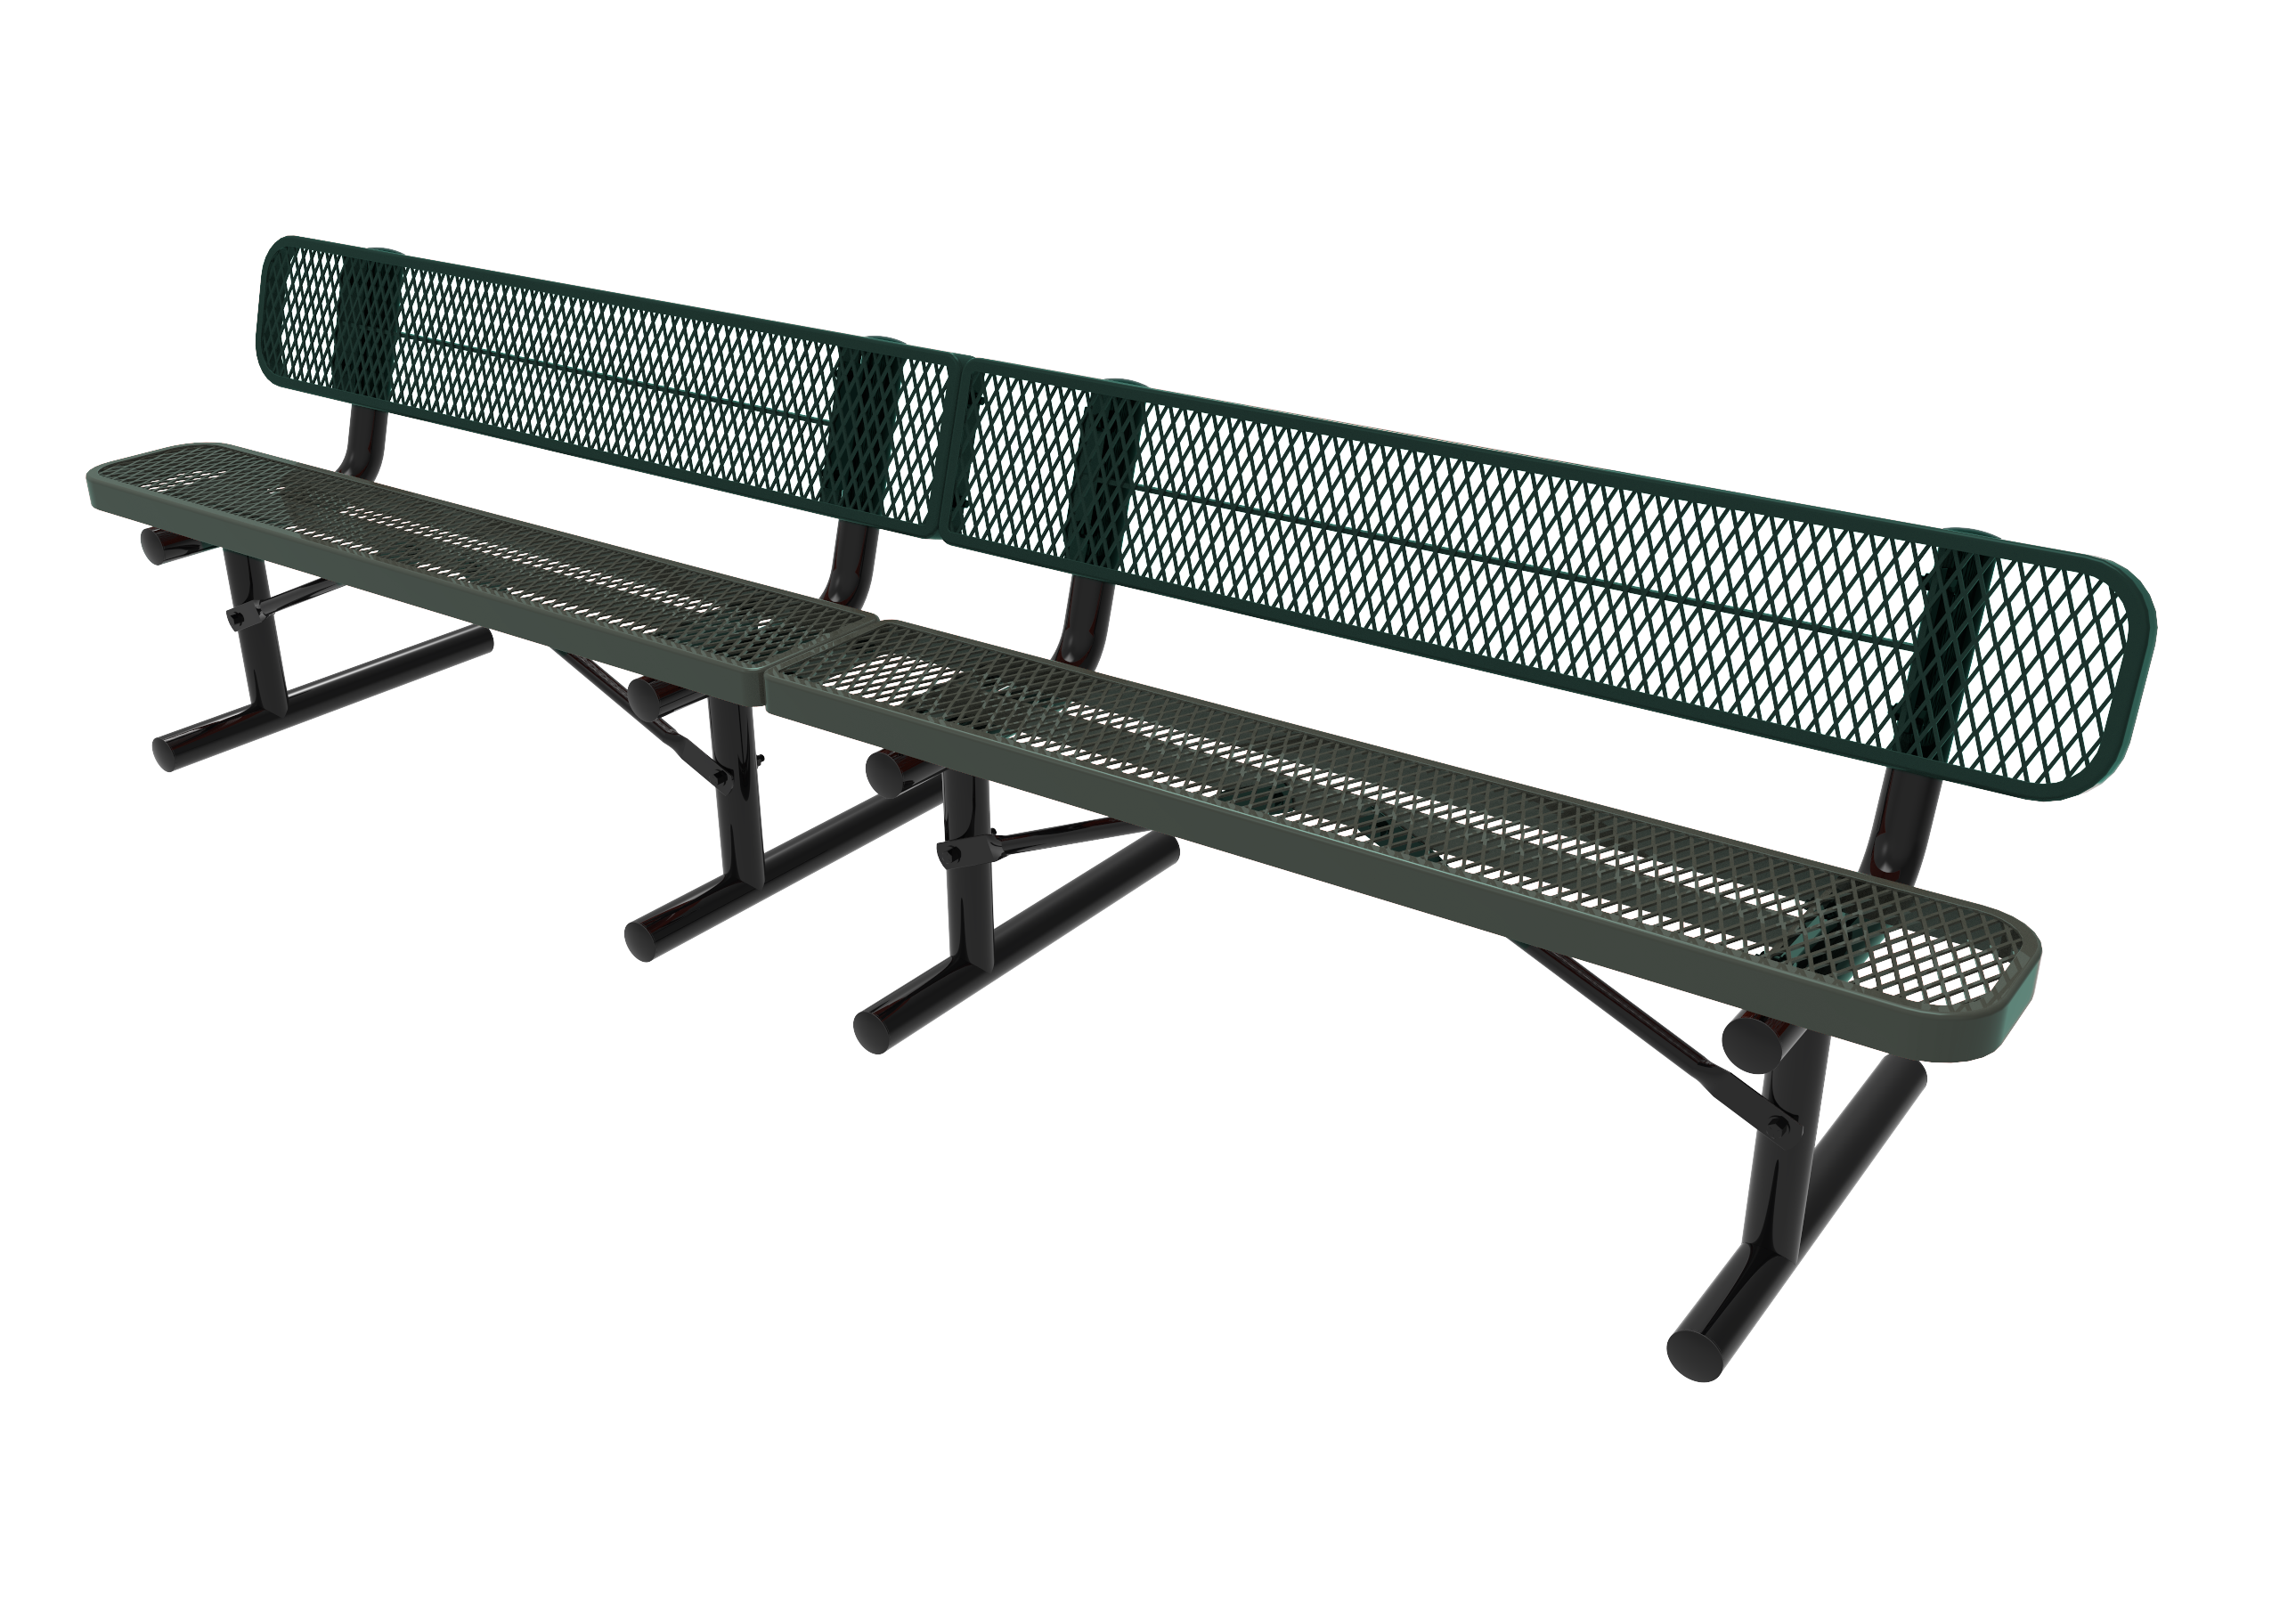 10-Ft. Park Bench with Back